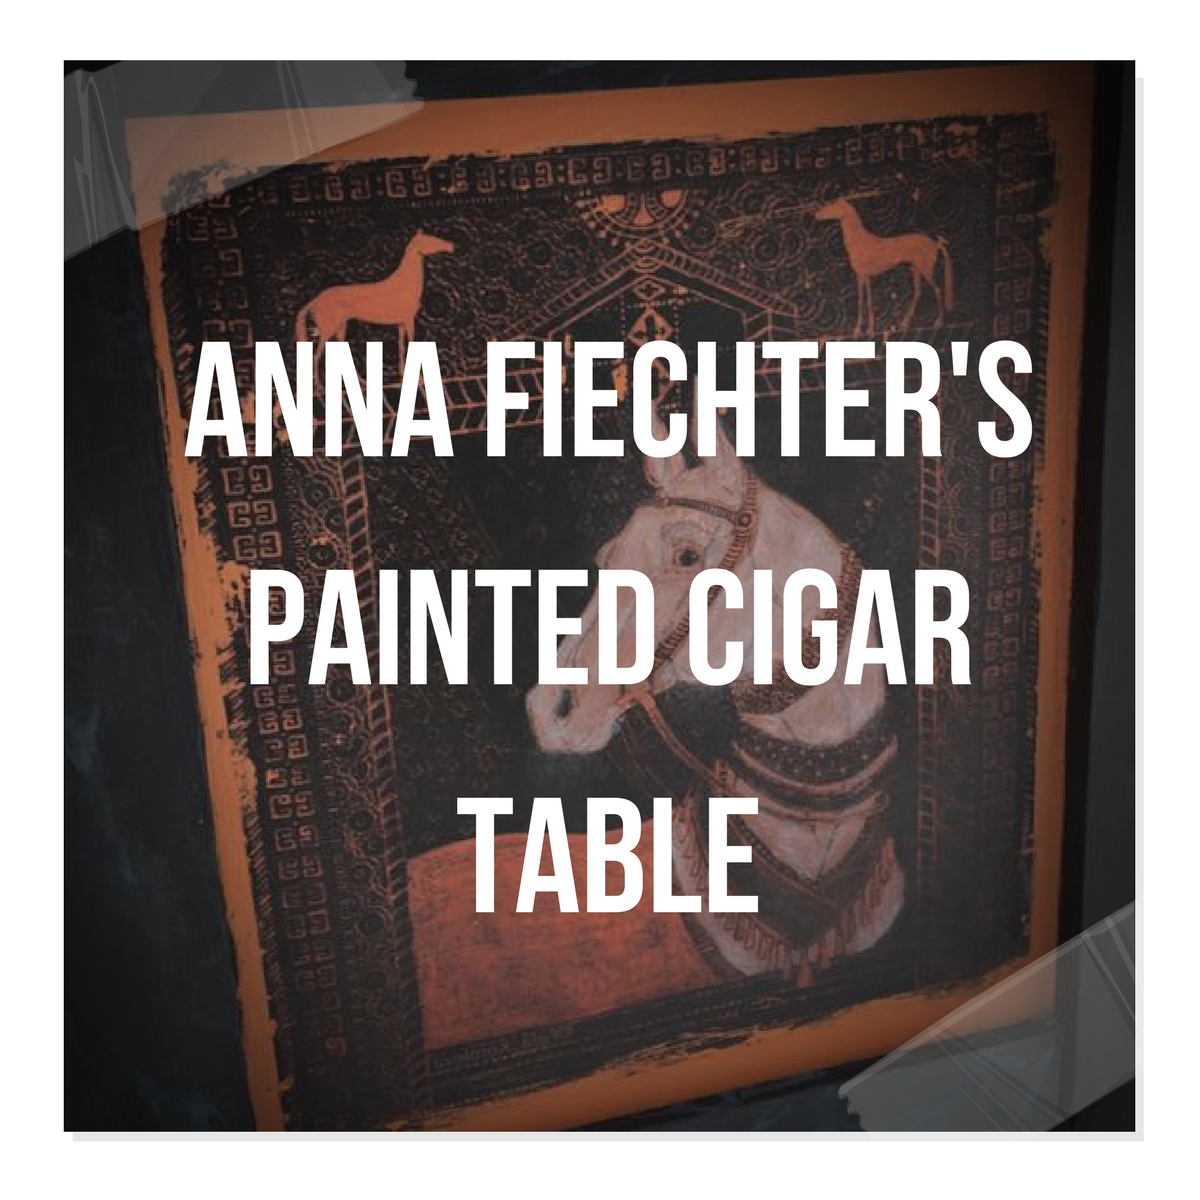 Anna Fiechter's Painted Cigar Table